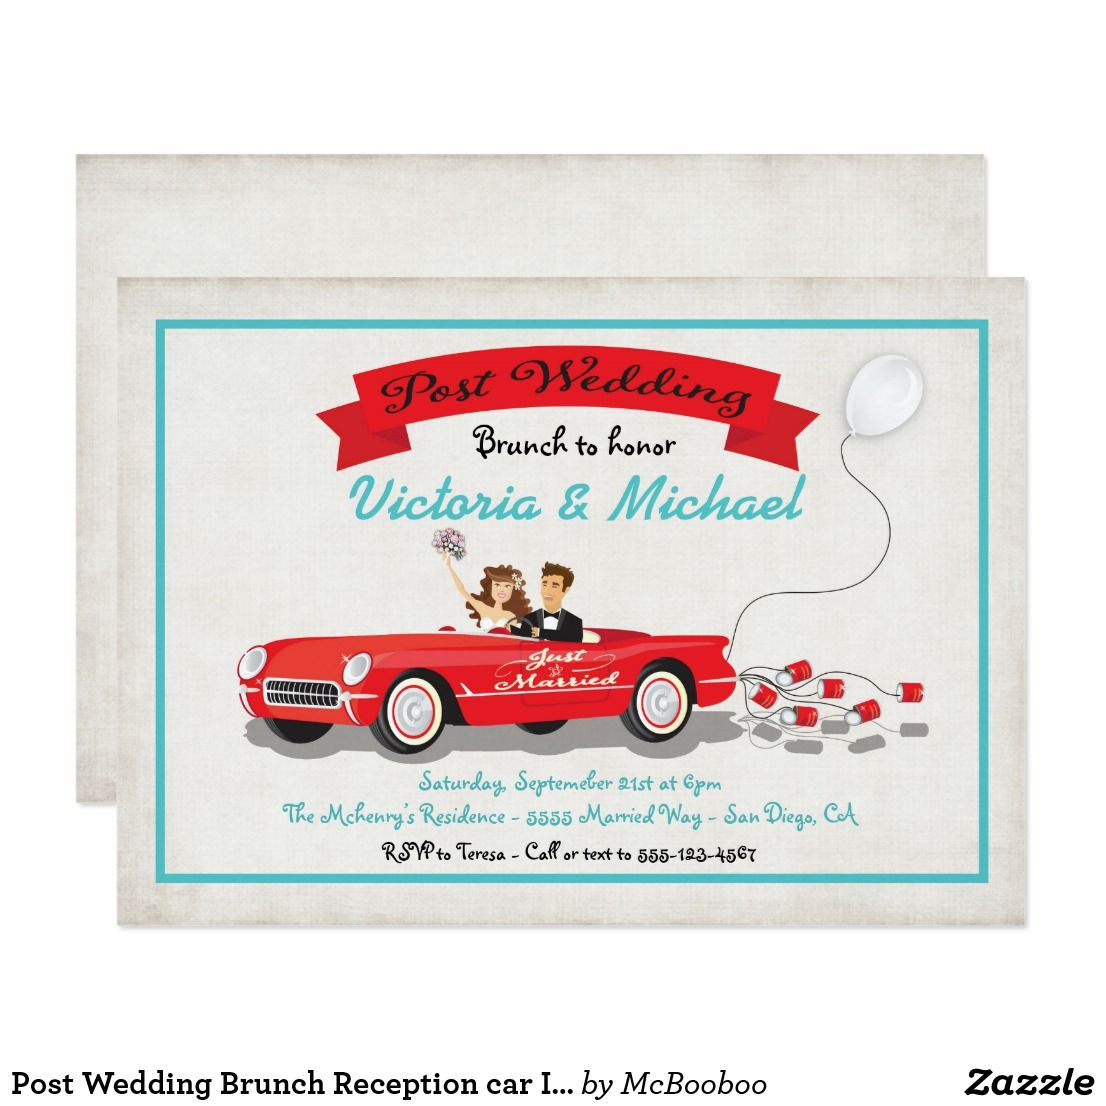 Post Wedding Brunch Reception car Invitation | Pinterest | Wedding ...